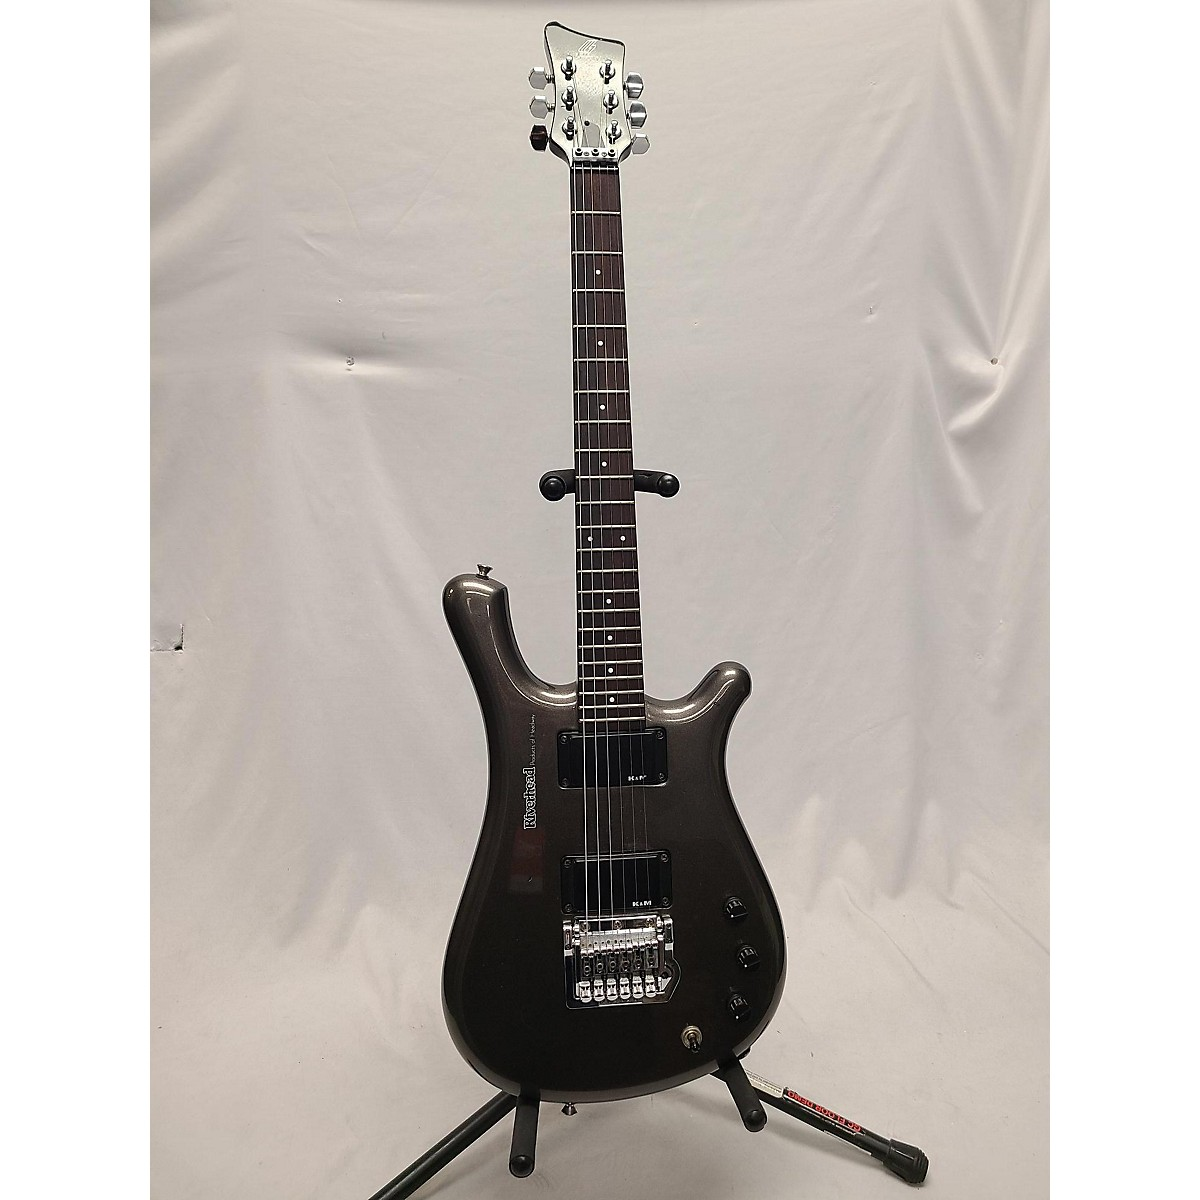 In Store Used Used Riverhead Headway RJG 900 Solid Body Electric Guitar